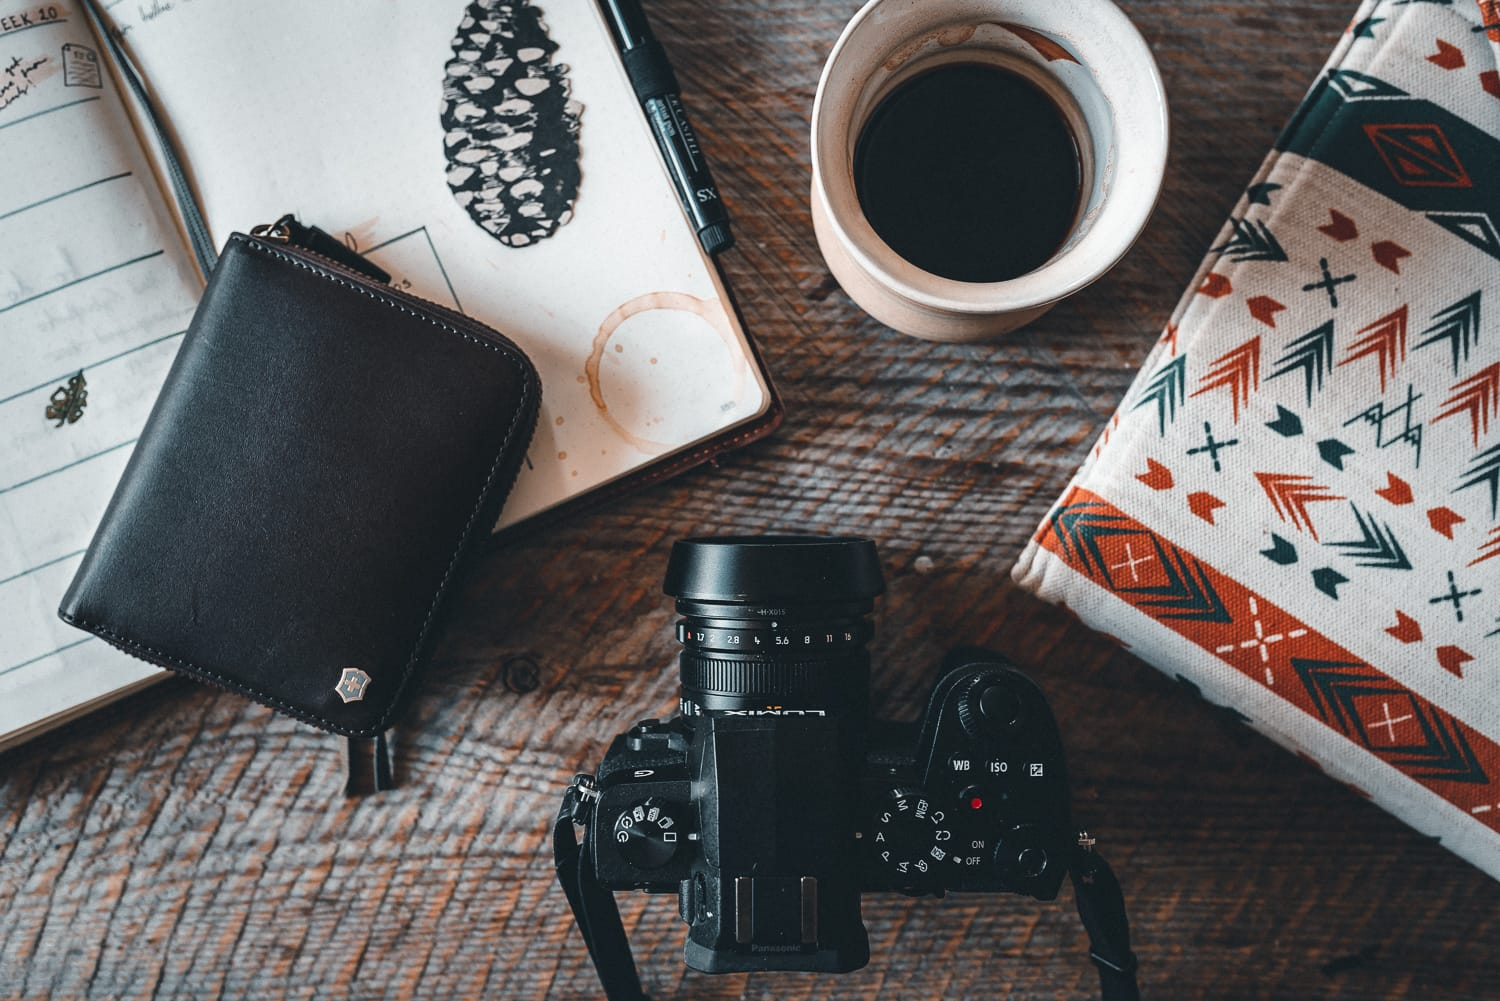 calendar, wallet, camera and coffee on a desk